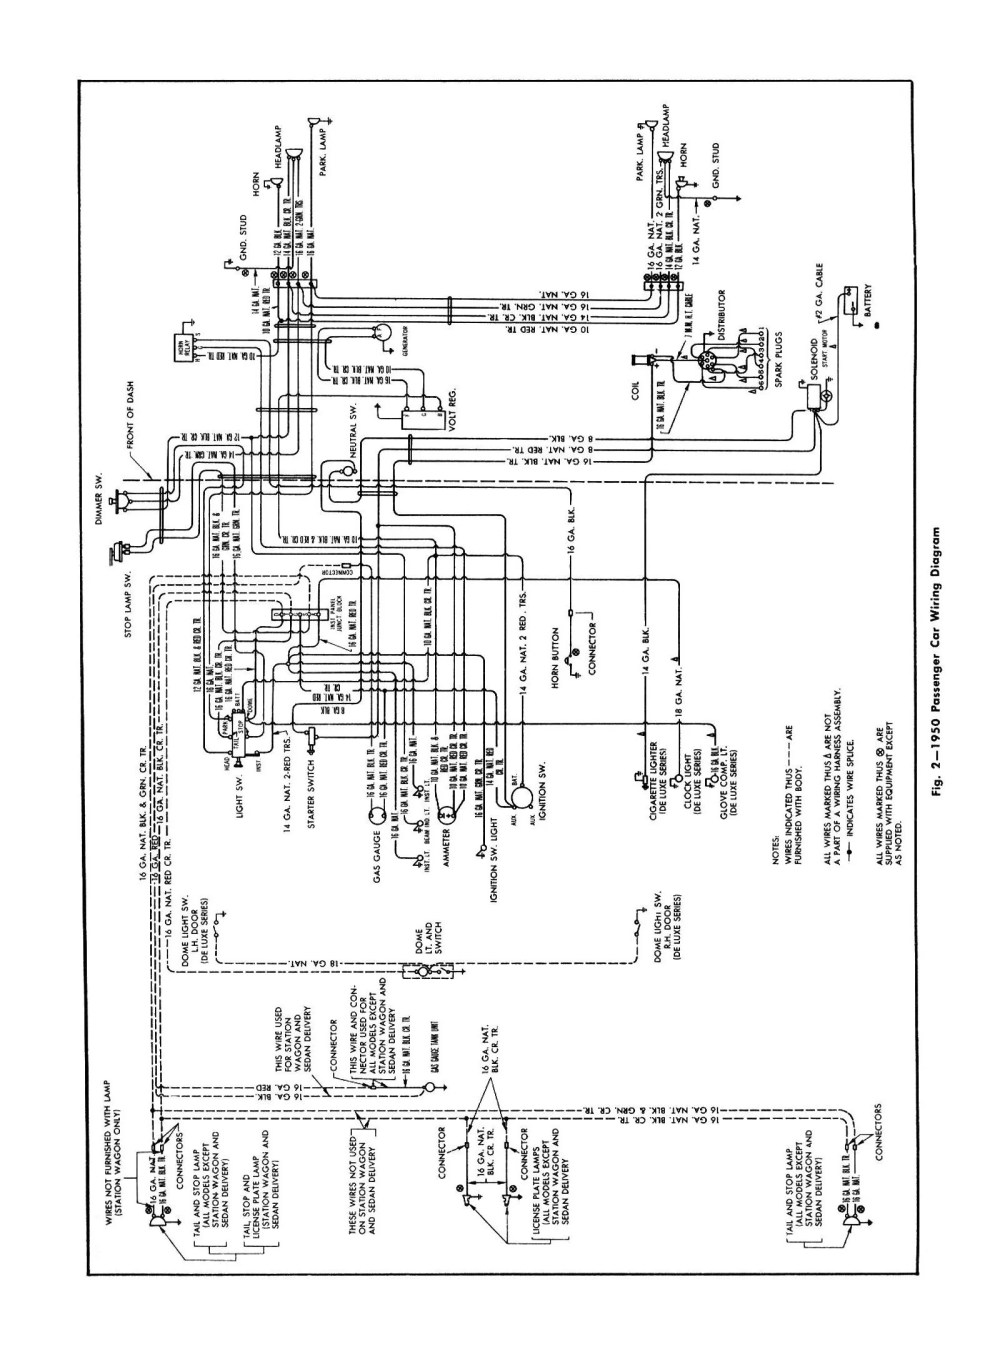 medium resolution of chevy wiring diagrams 1955 235 chevy engine diagram 235 chevy engine wiring diagram